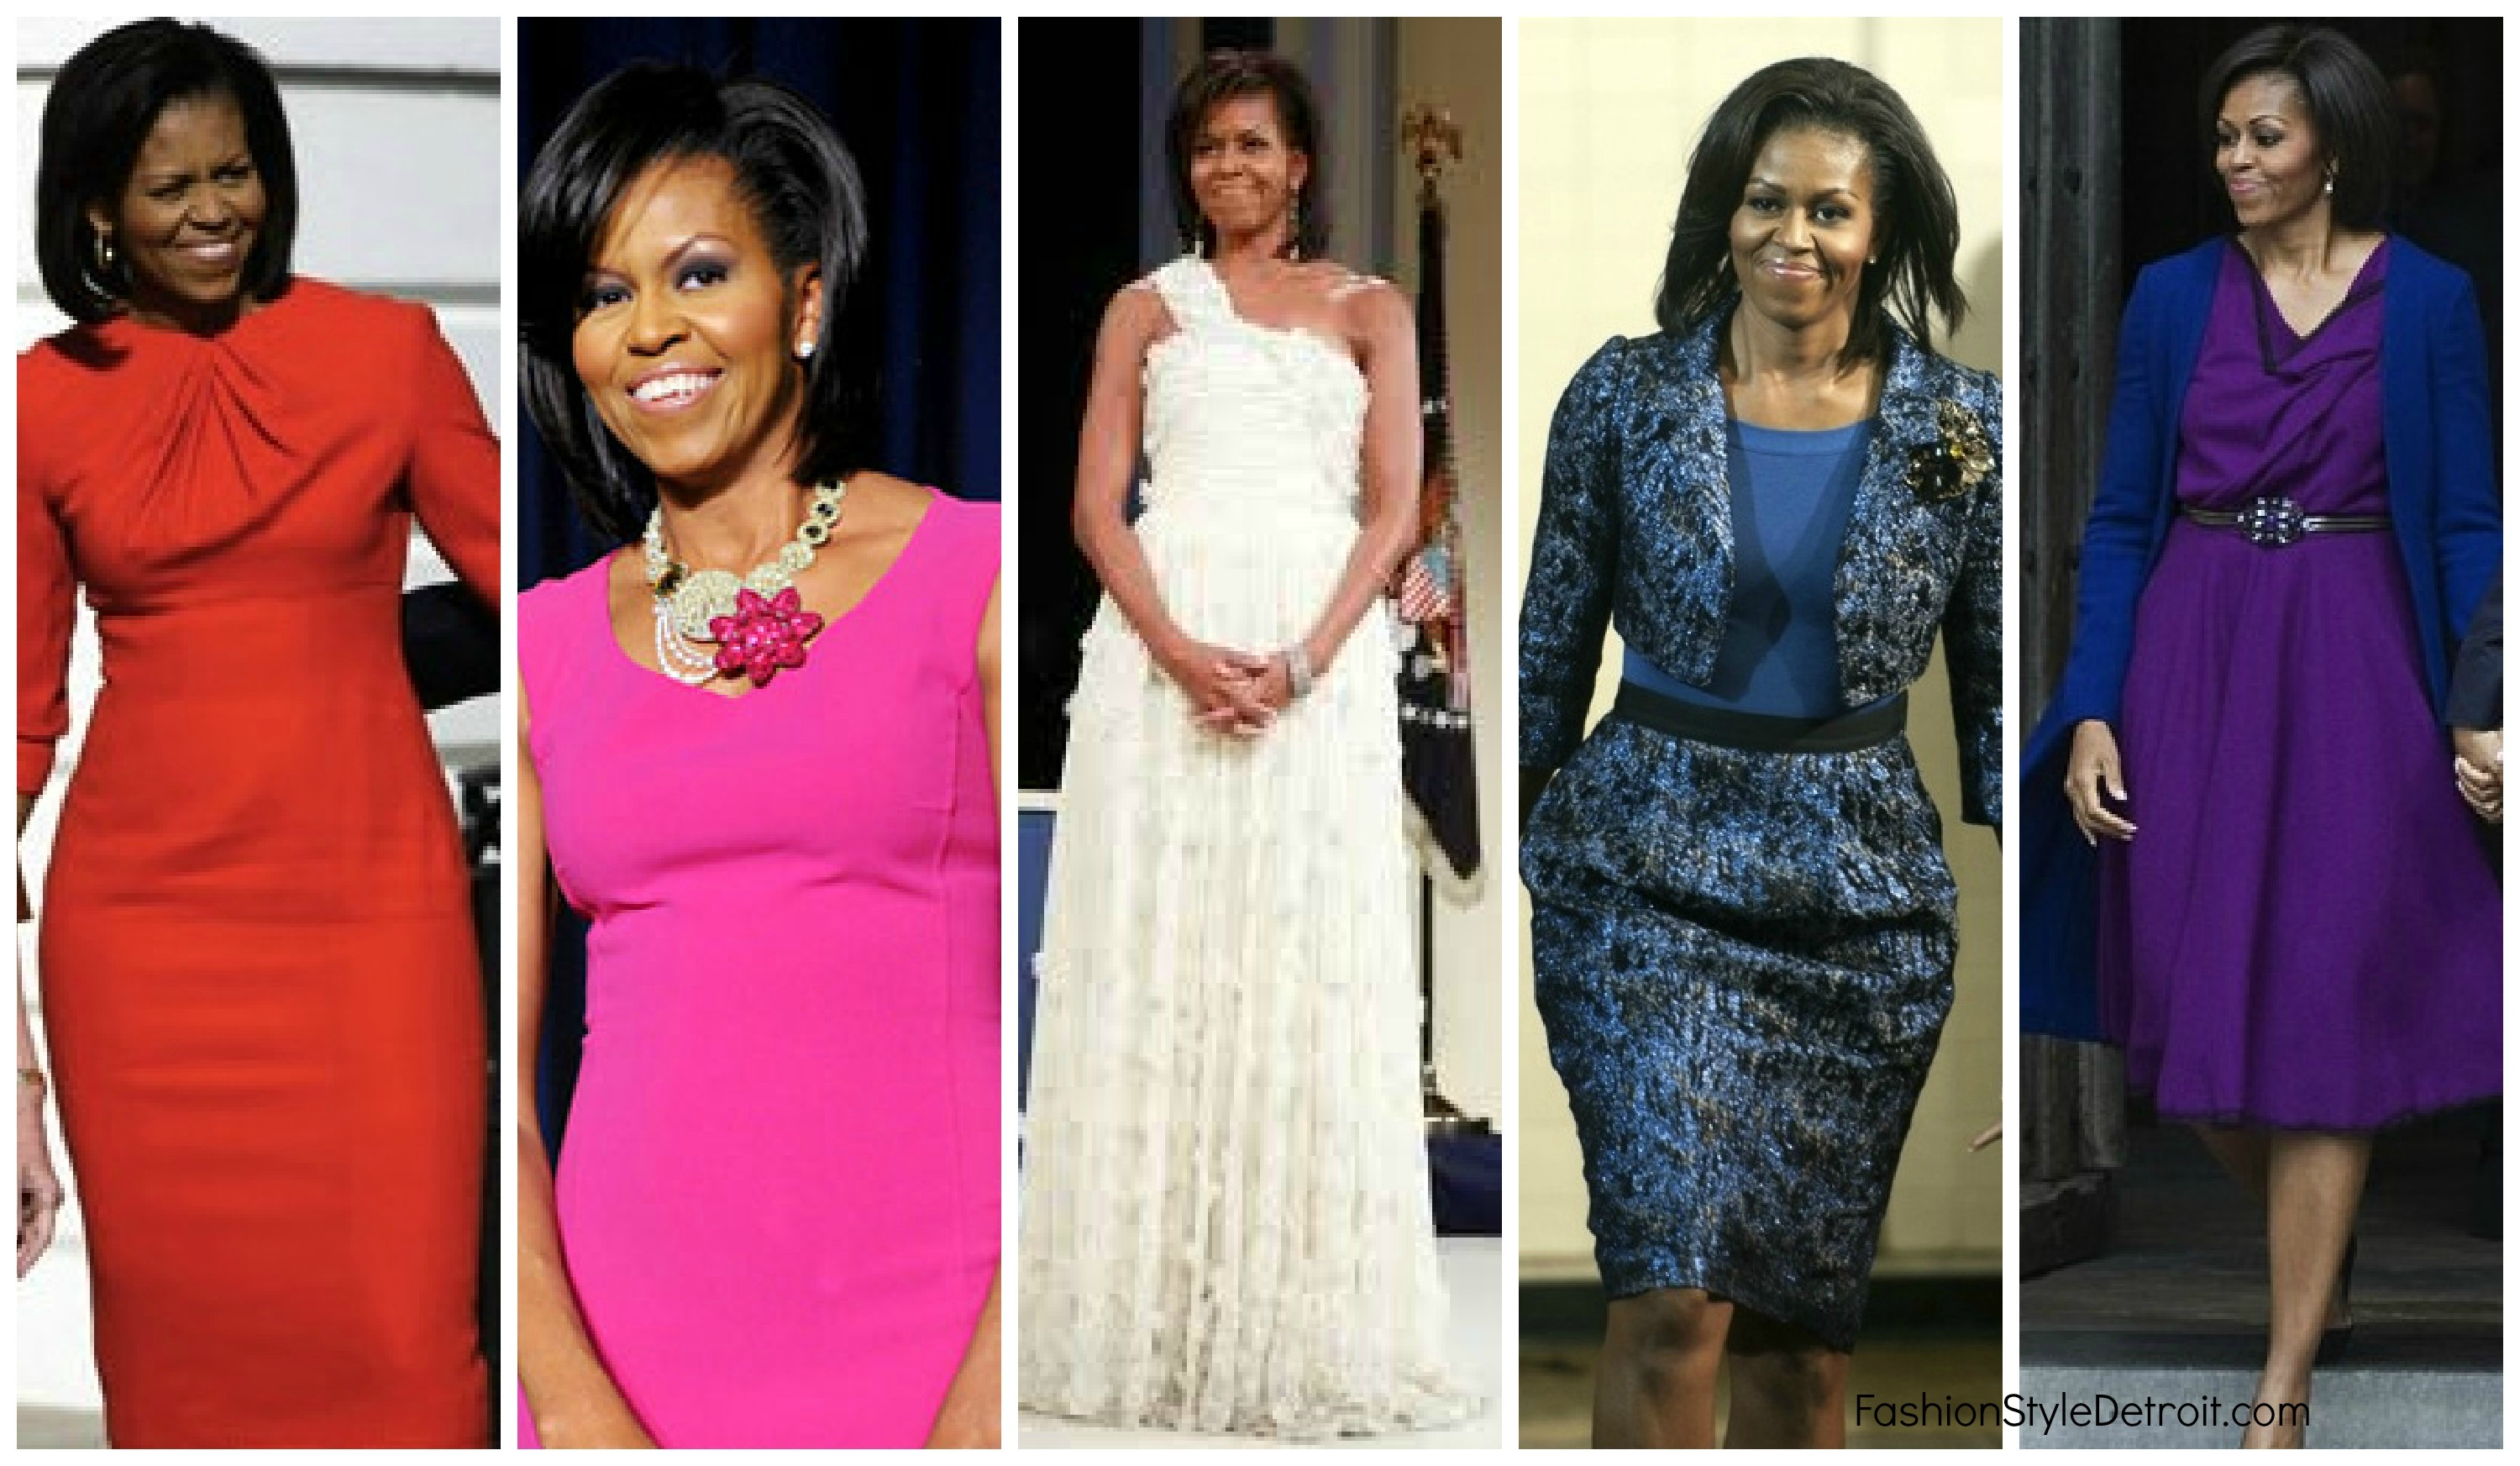 Vivienne Westwood Doesn 39 T Care For Michelle Obama 39 S Style Fashion Style Detroit